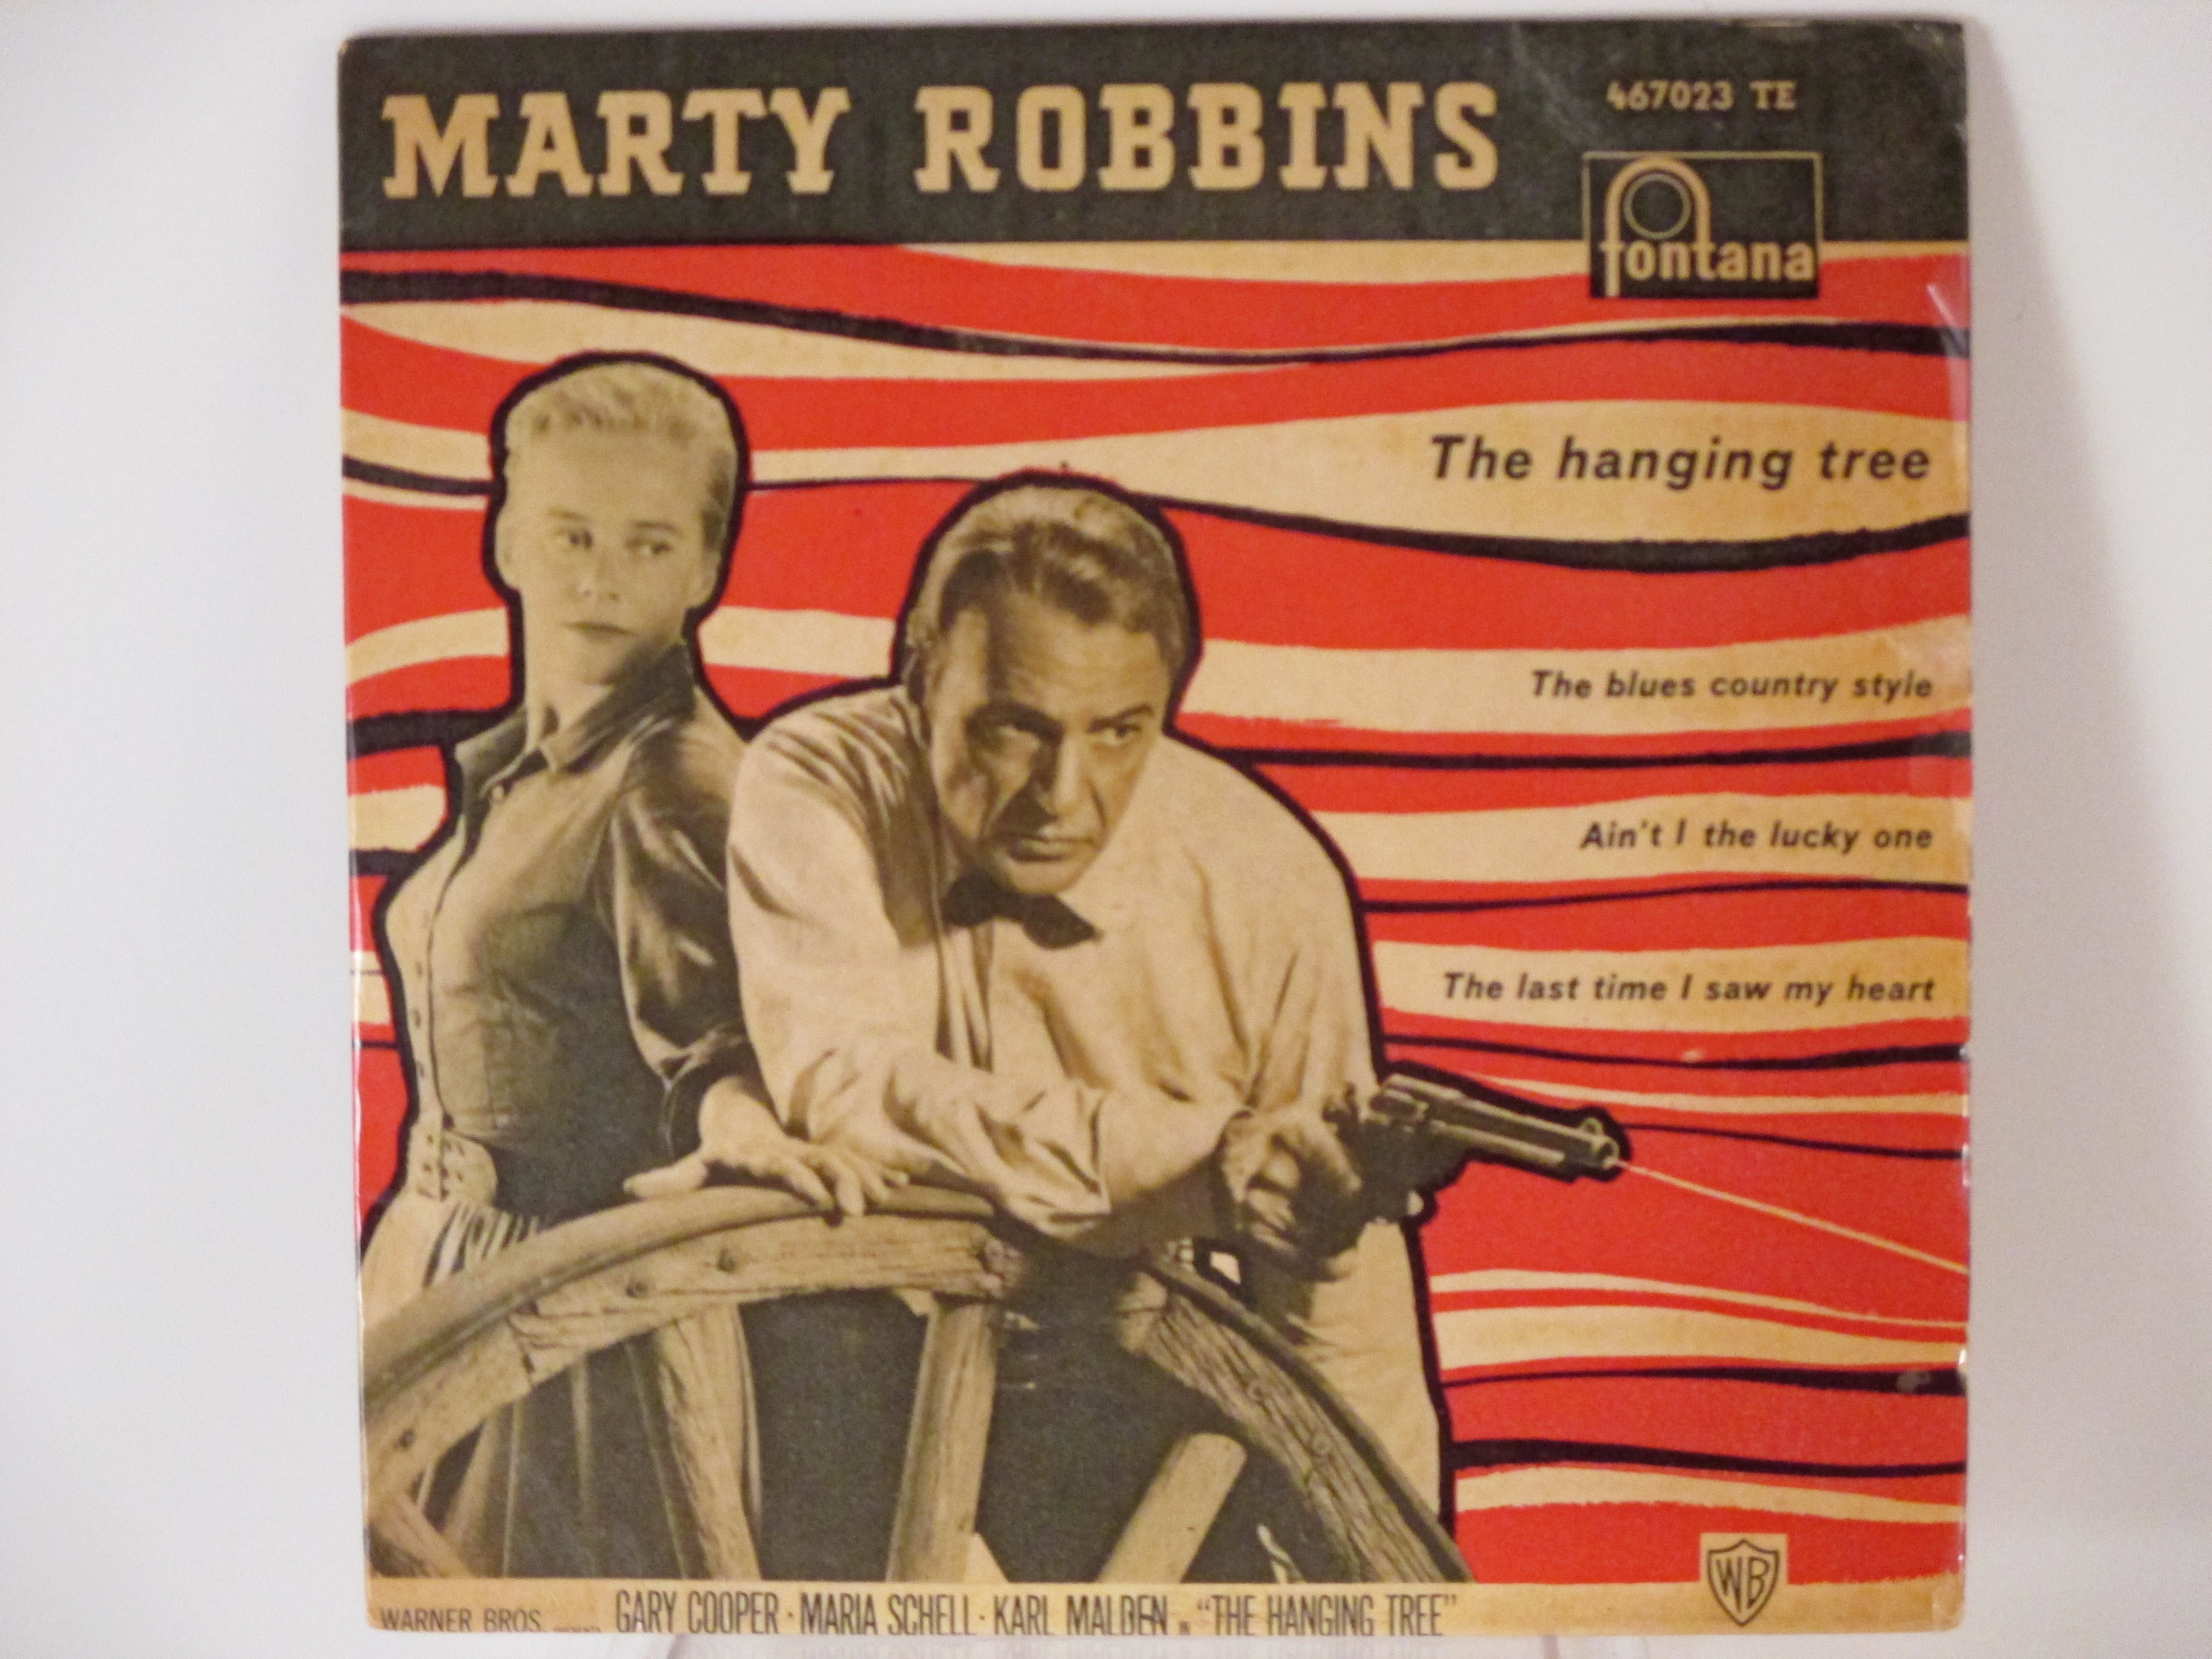 MARTY ROBBINS : (EP) The hanging tree / The blues country style / Ain't I the lucky one / The last time I saw my heart